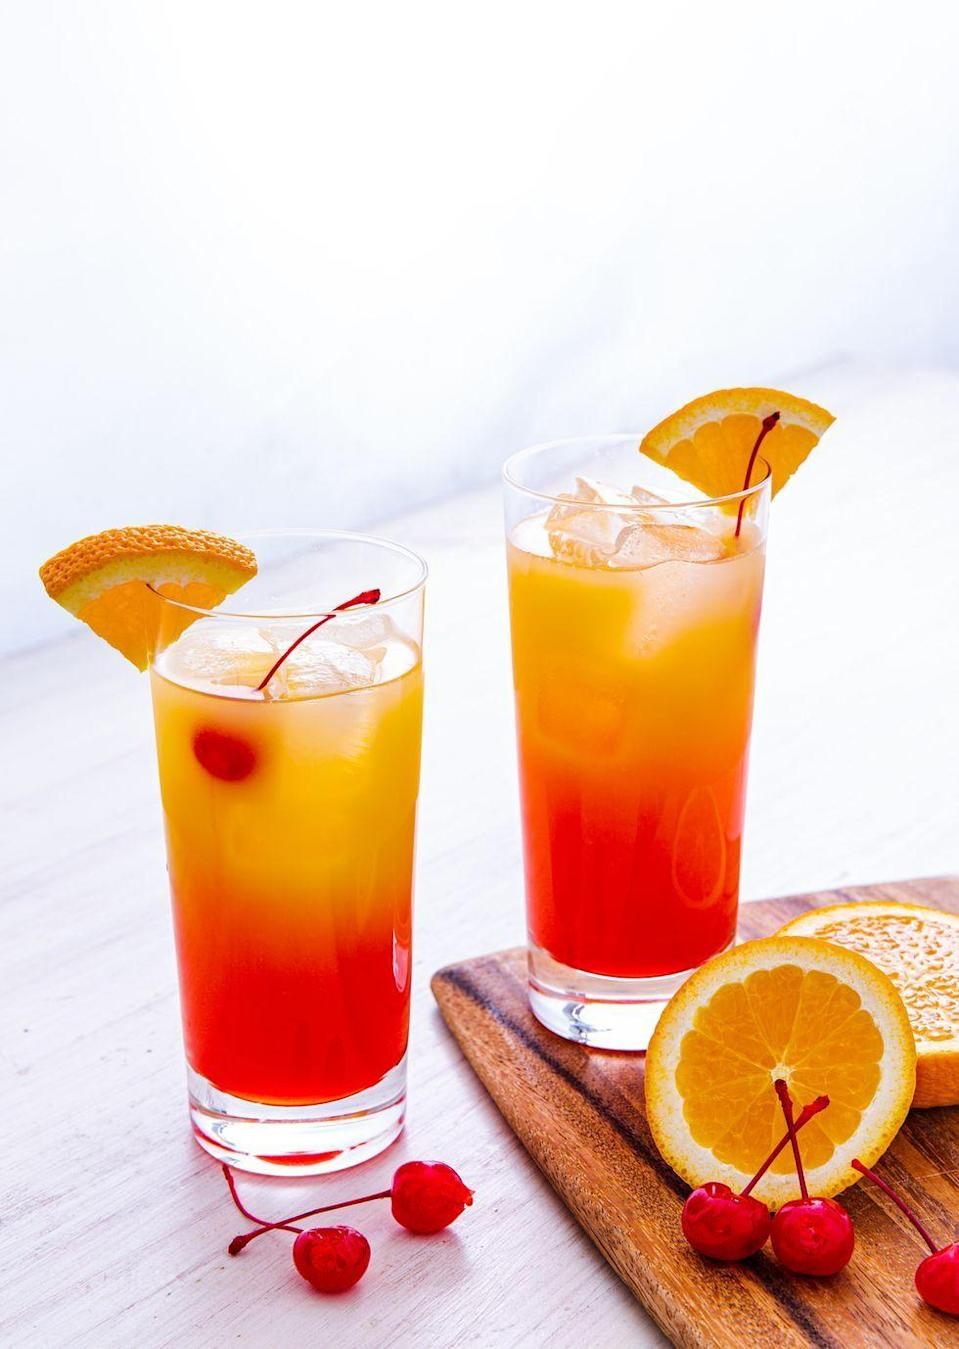 """<p>Beautiful to look at...and to drink! </p><p>Get the recipe from <a href=""""https://www.delish.com/cooking/recipe-ideas/a31293446/tequila-sunrise-recipe/"""" rel=""""nofollow noopener"""" target=""""_blank"""" data-ylk=""""slk:Delish."""" class=""""link rapid-noclick-resp"""">Delish.</a></p>"""